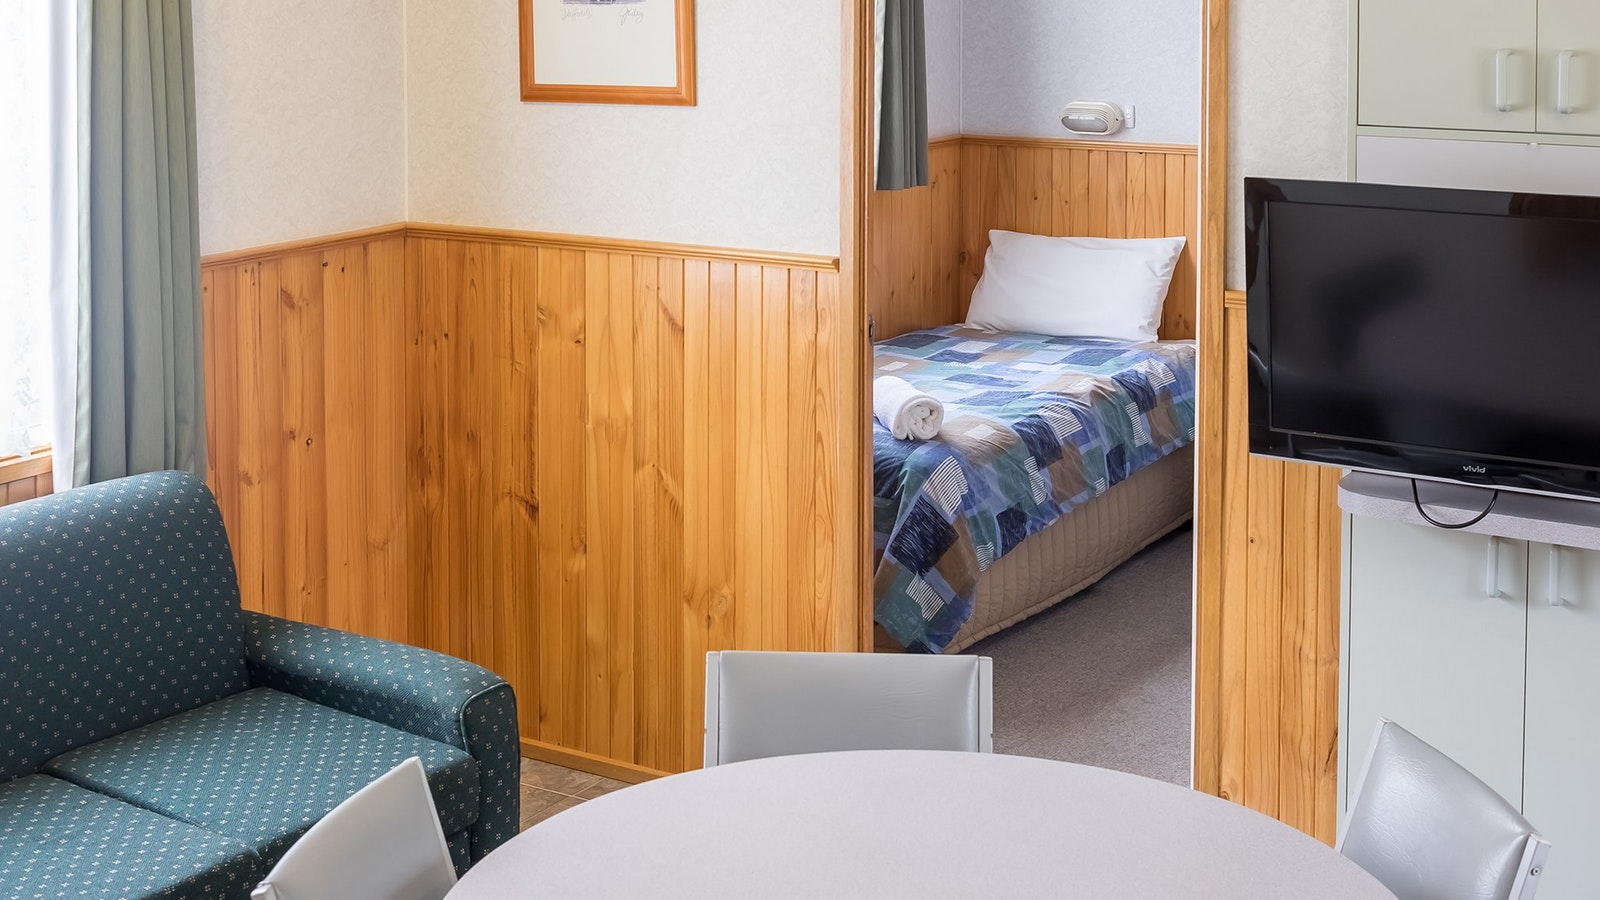 Family cabin with sofa, dining table and chairs, TV and access to bedroom.